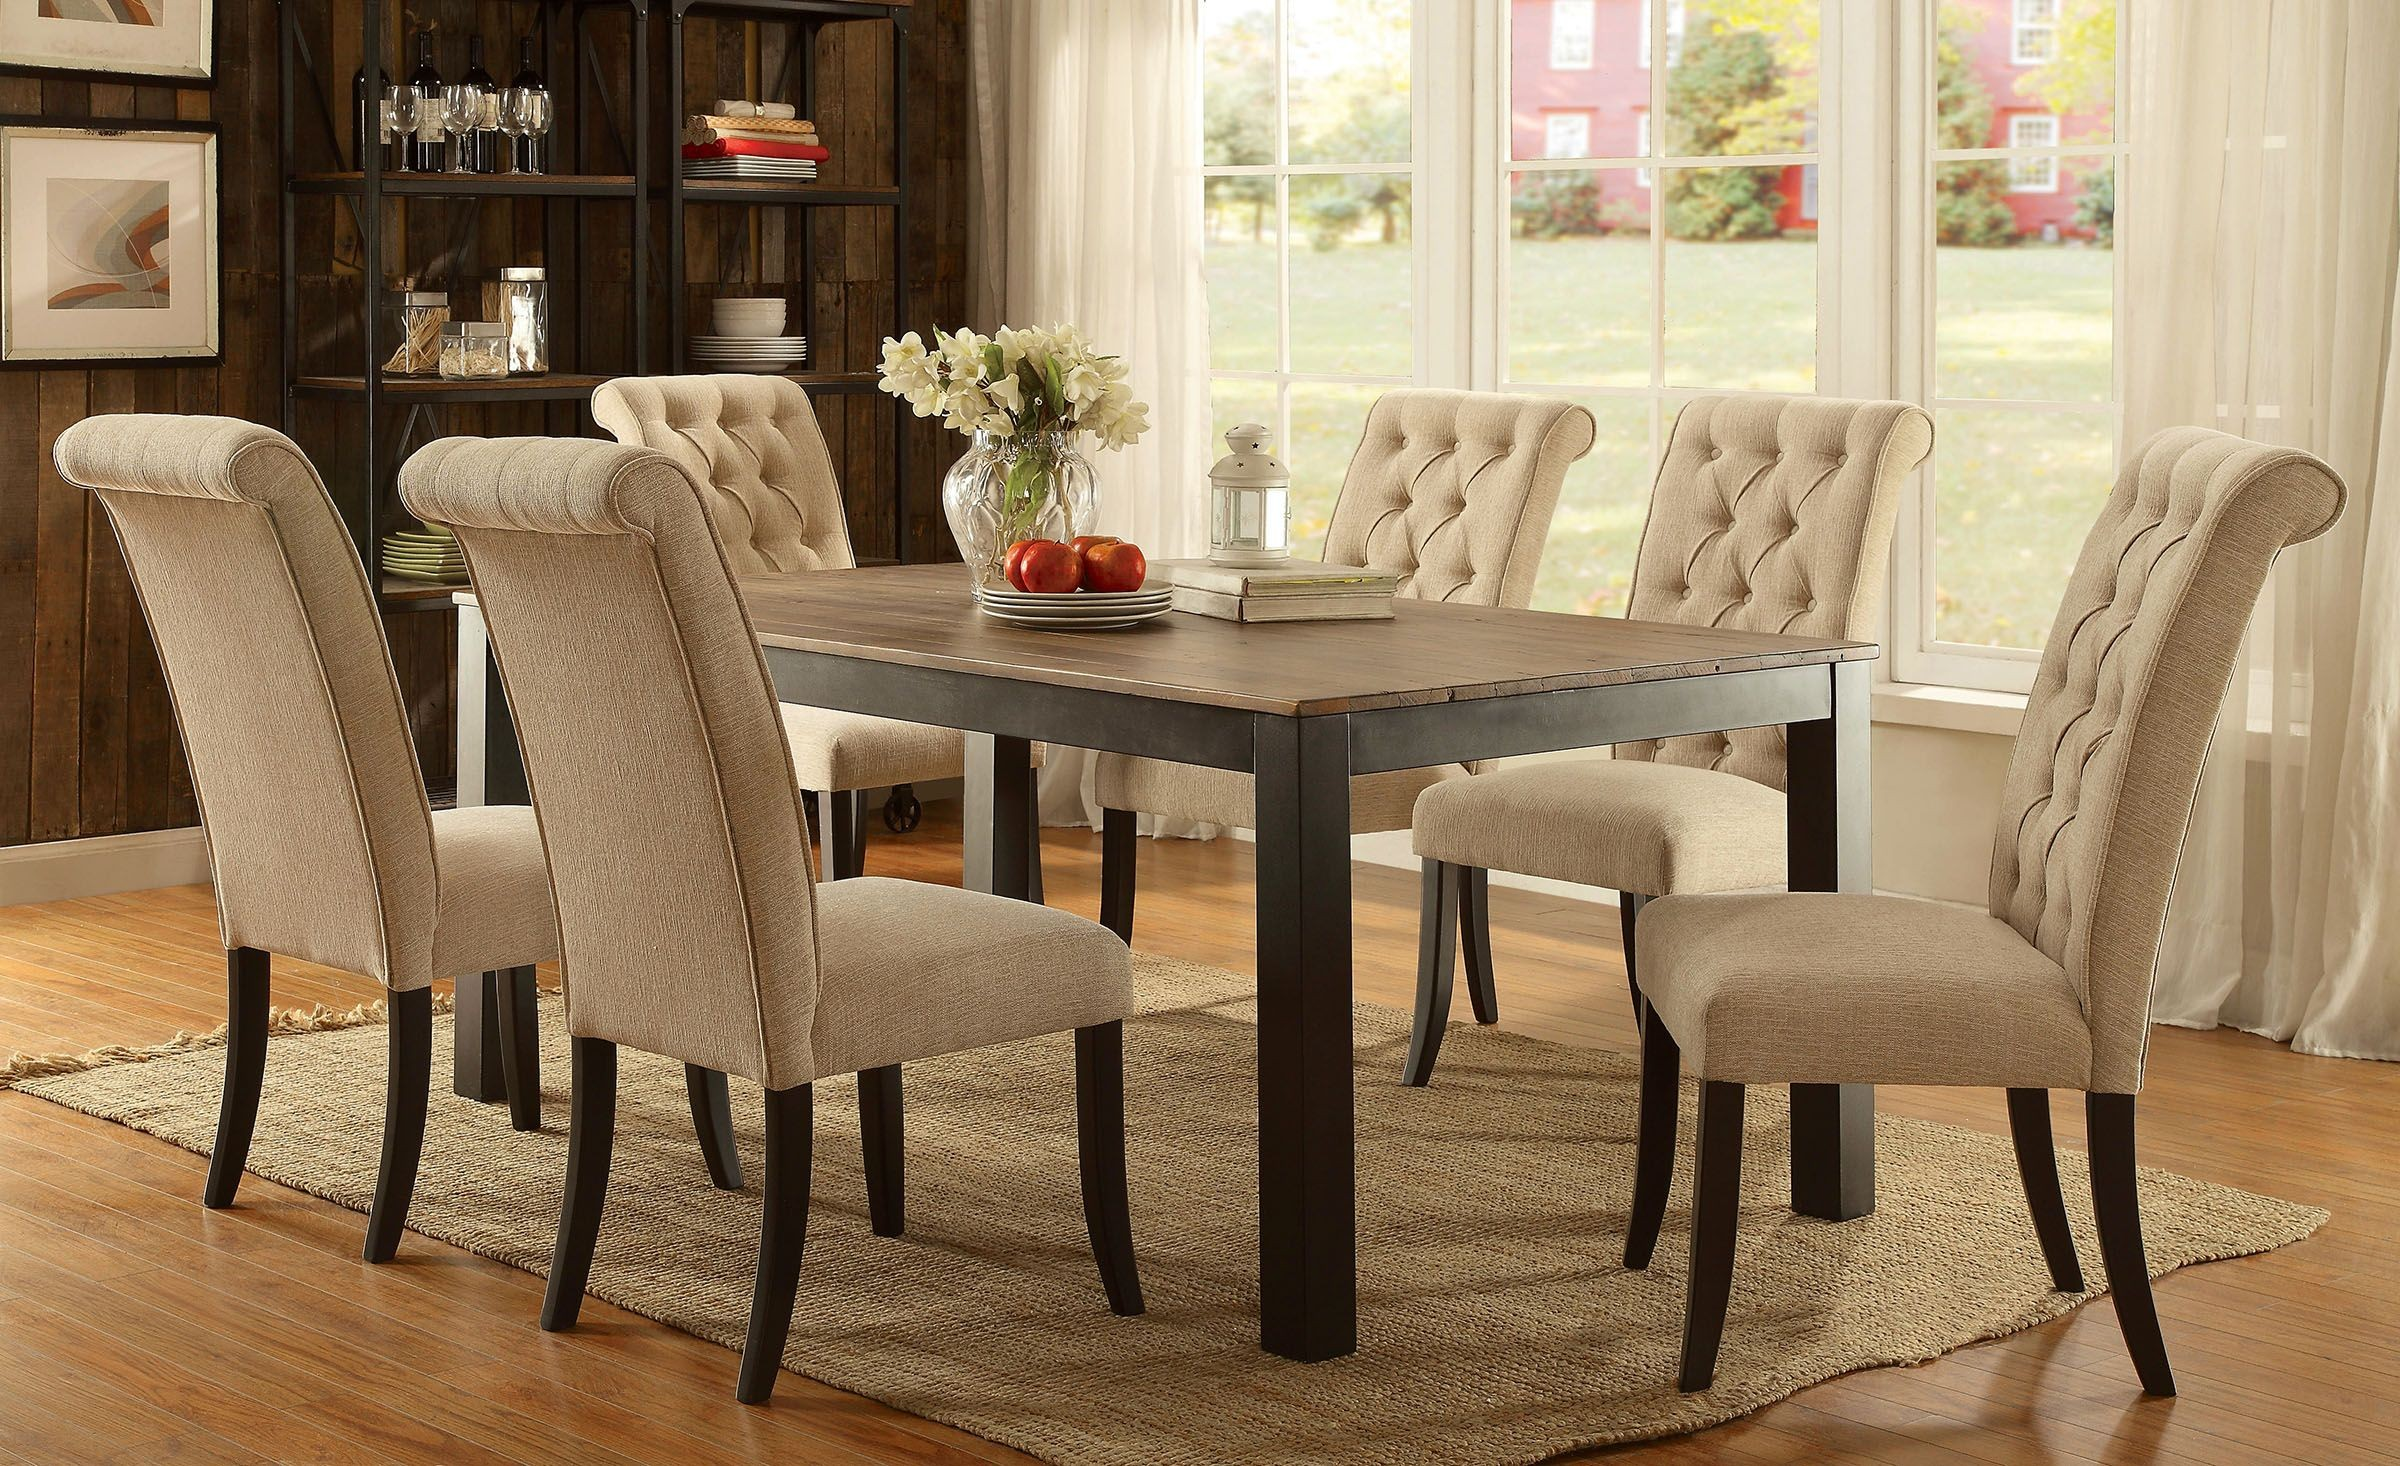 Marshall rustic oak rectangular dining room set from for Rustic dining room sets